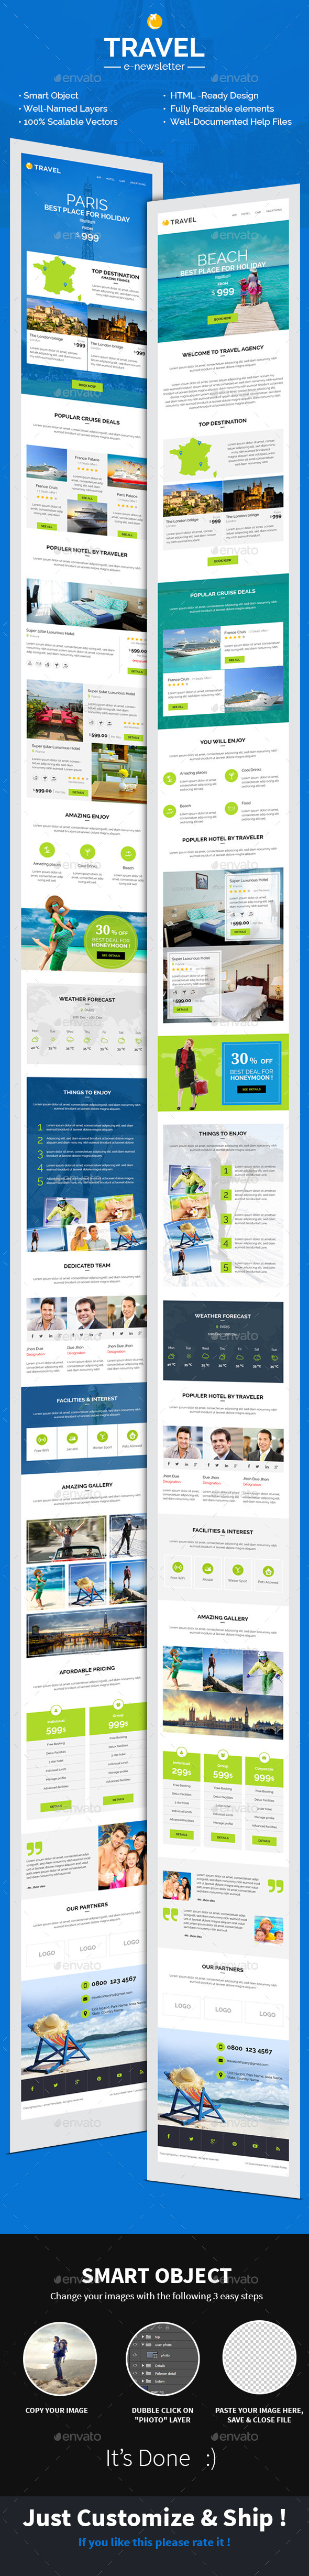 Travel/Hotel E-newsletter PSD Template - E-newsletters Web Elements